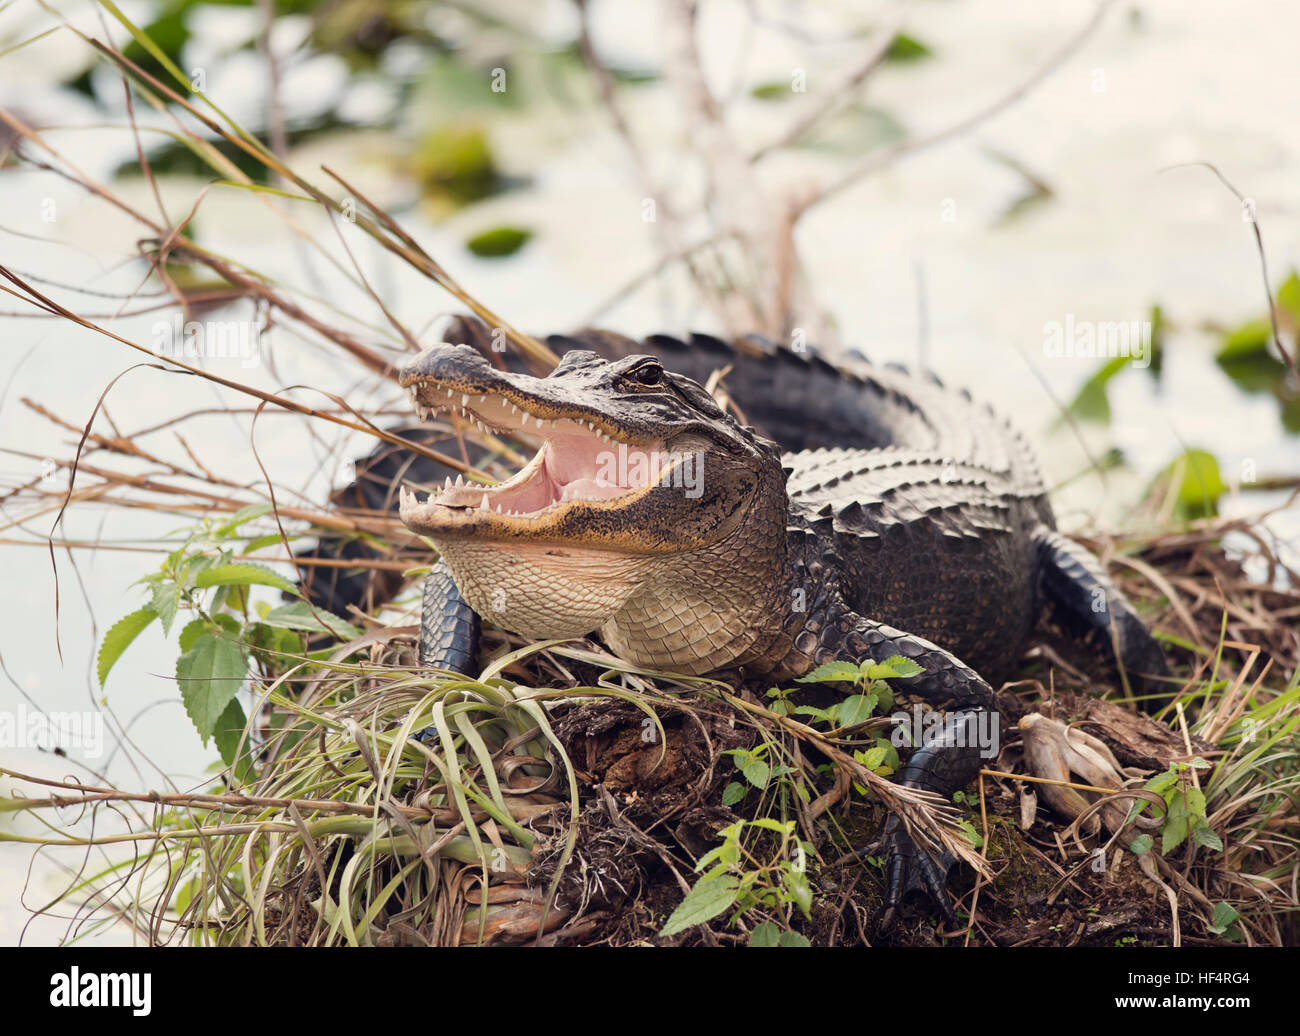 American Alligator Basking with its Mouth Open - Stock Image